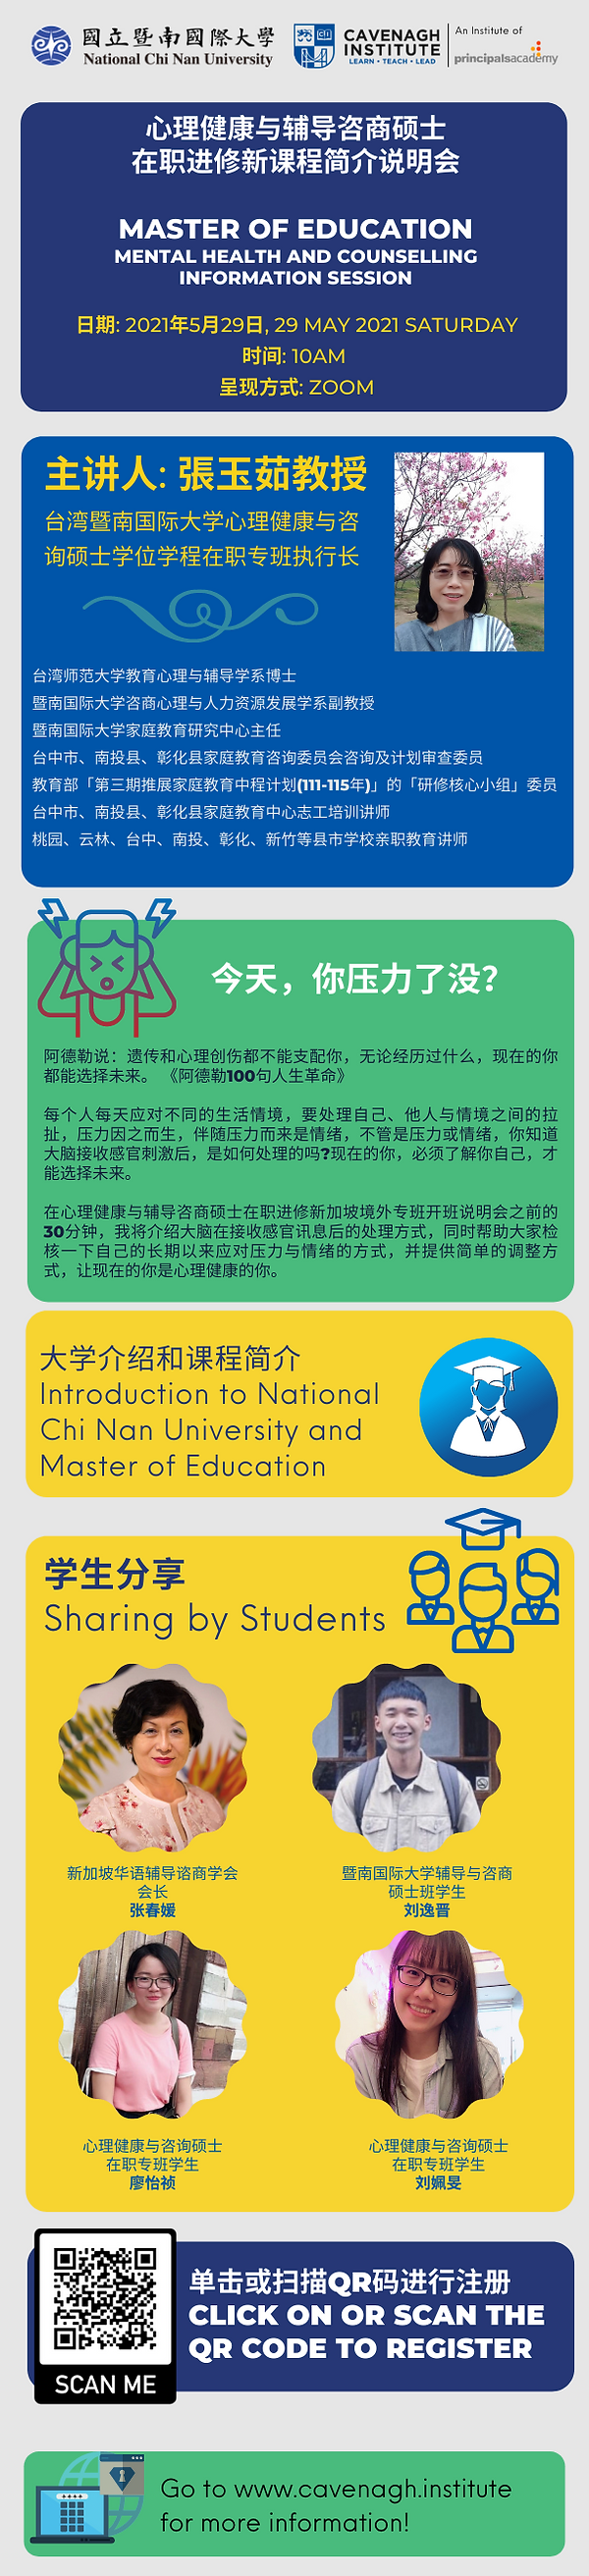 NCNU Info Session 29 May 2021.png